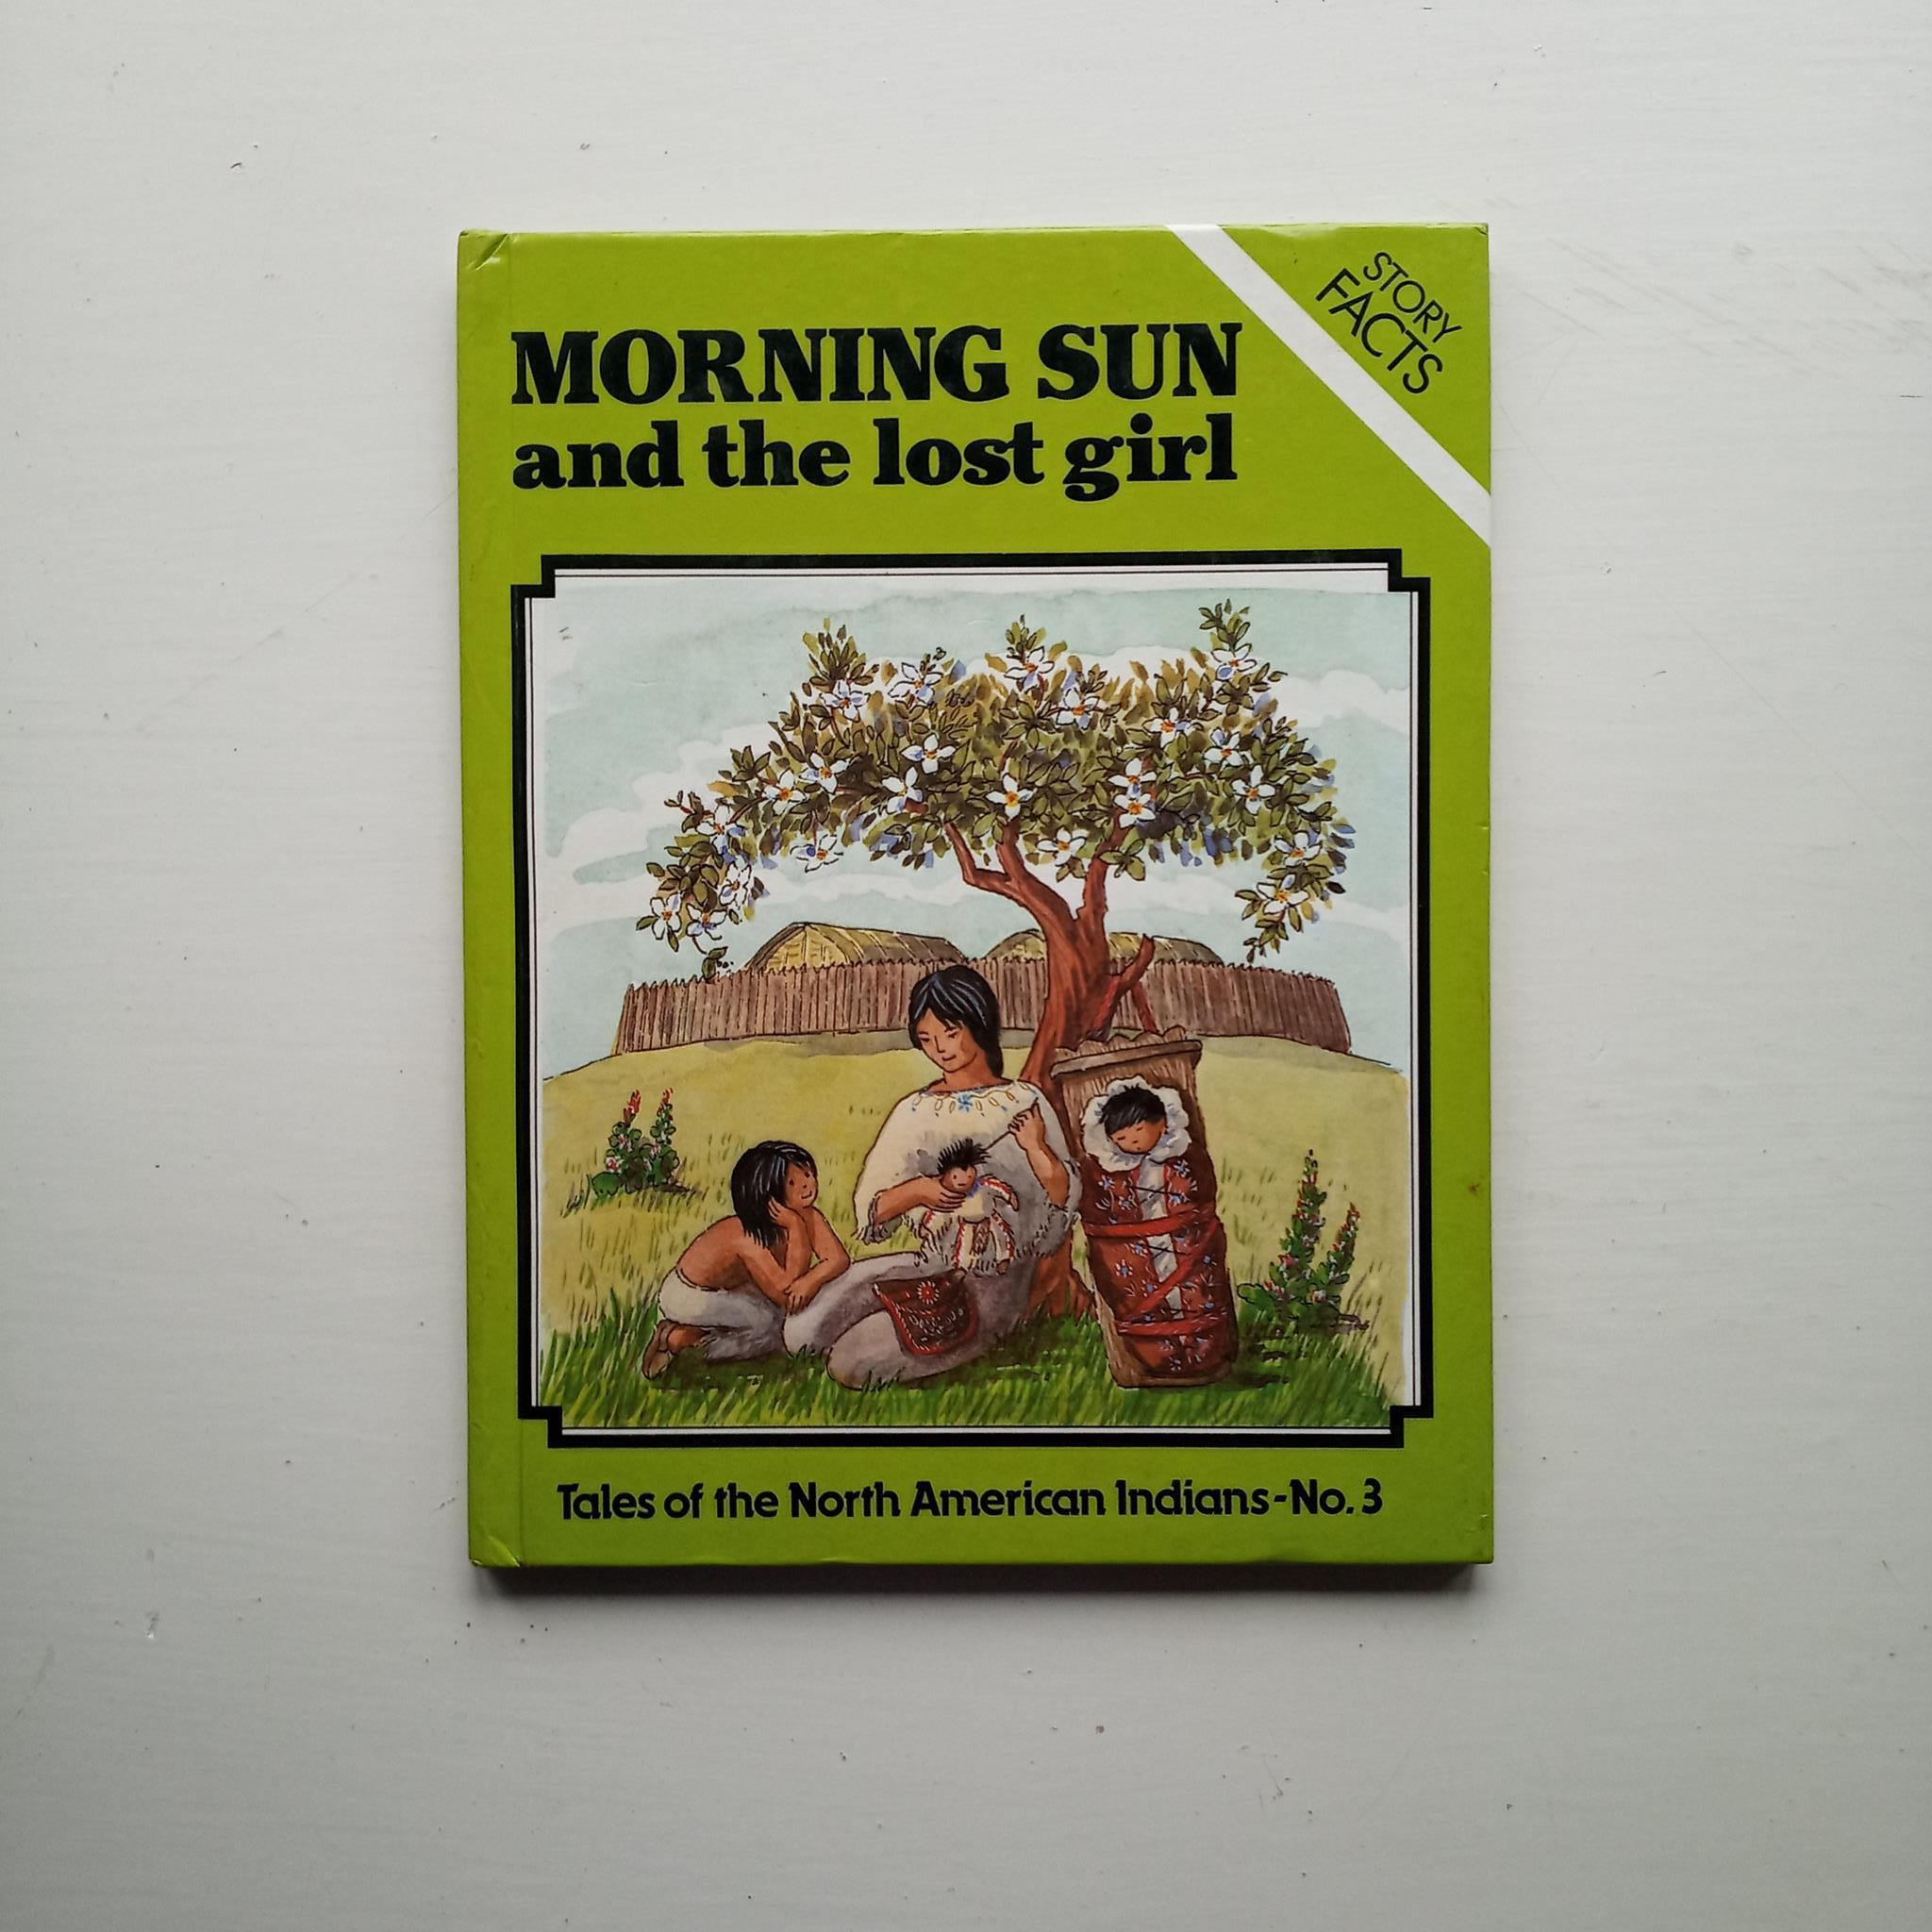 Morning Sun and the Lost Girl by Neil and Ting Morris